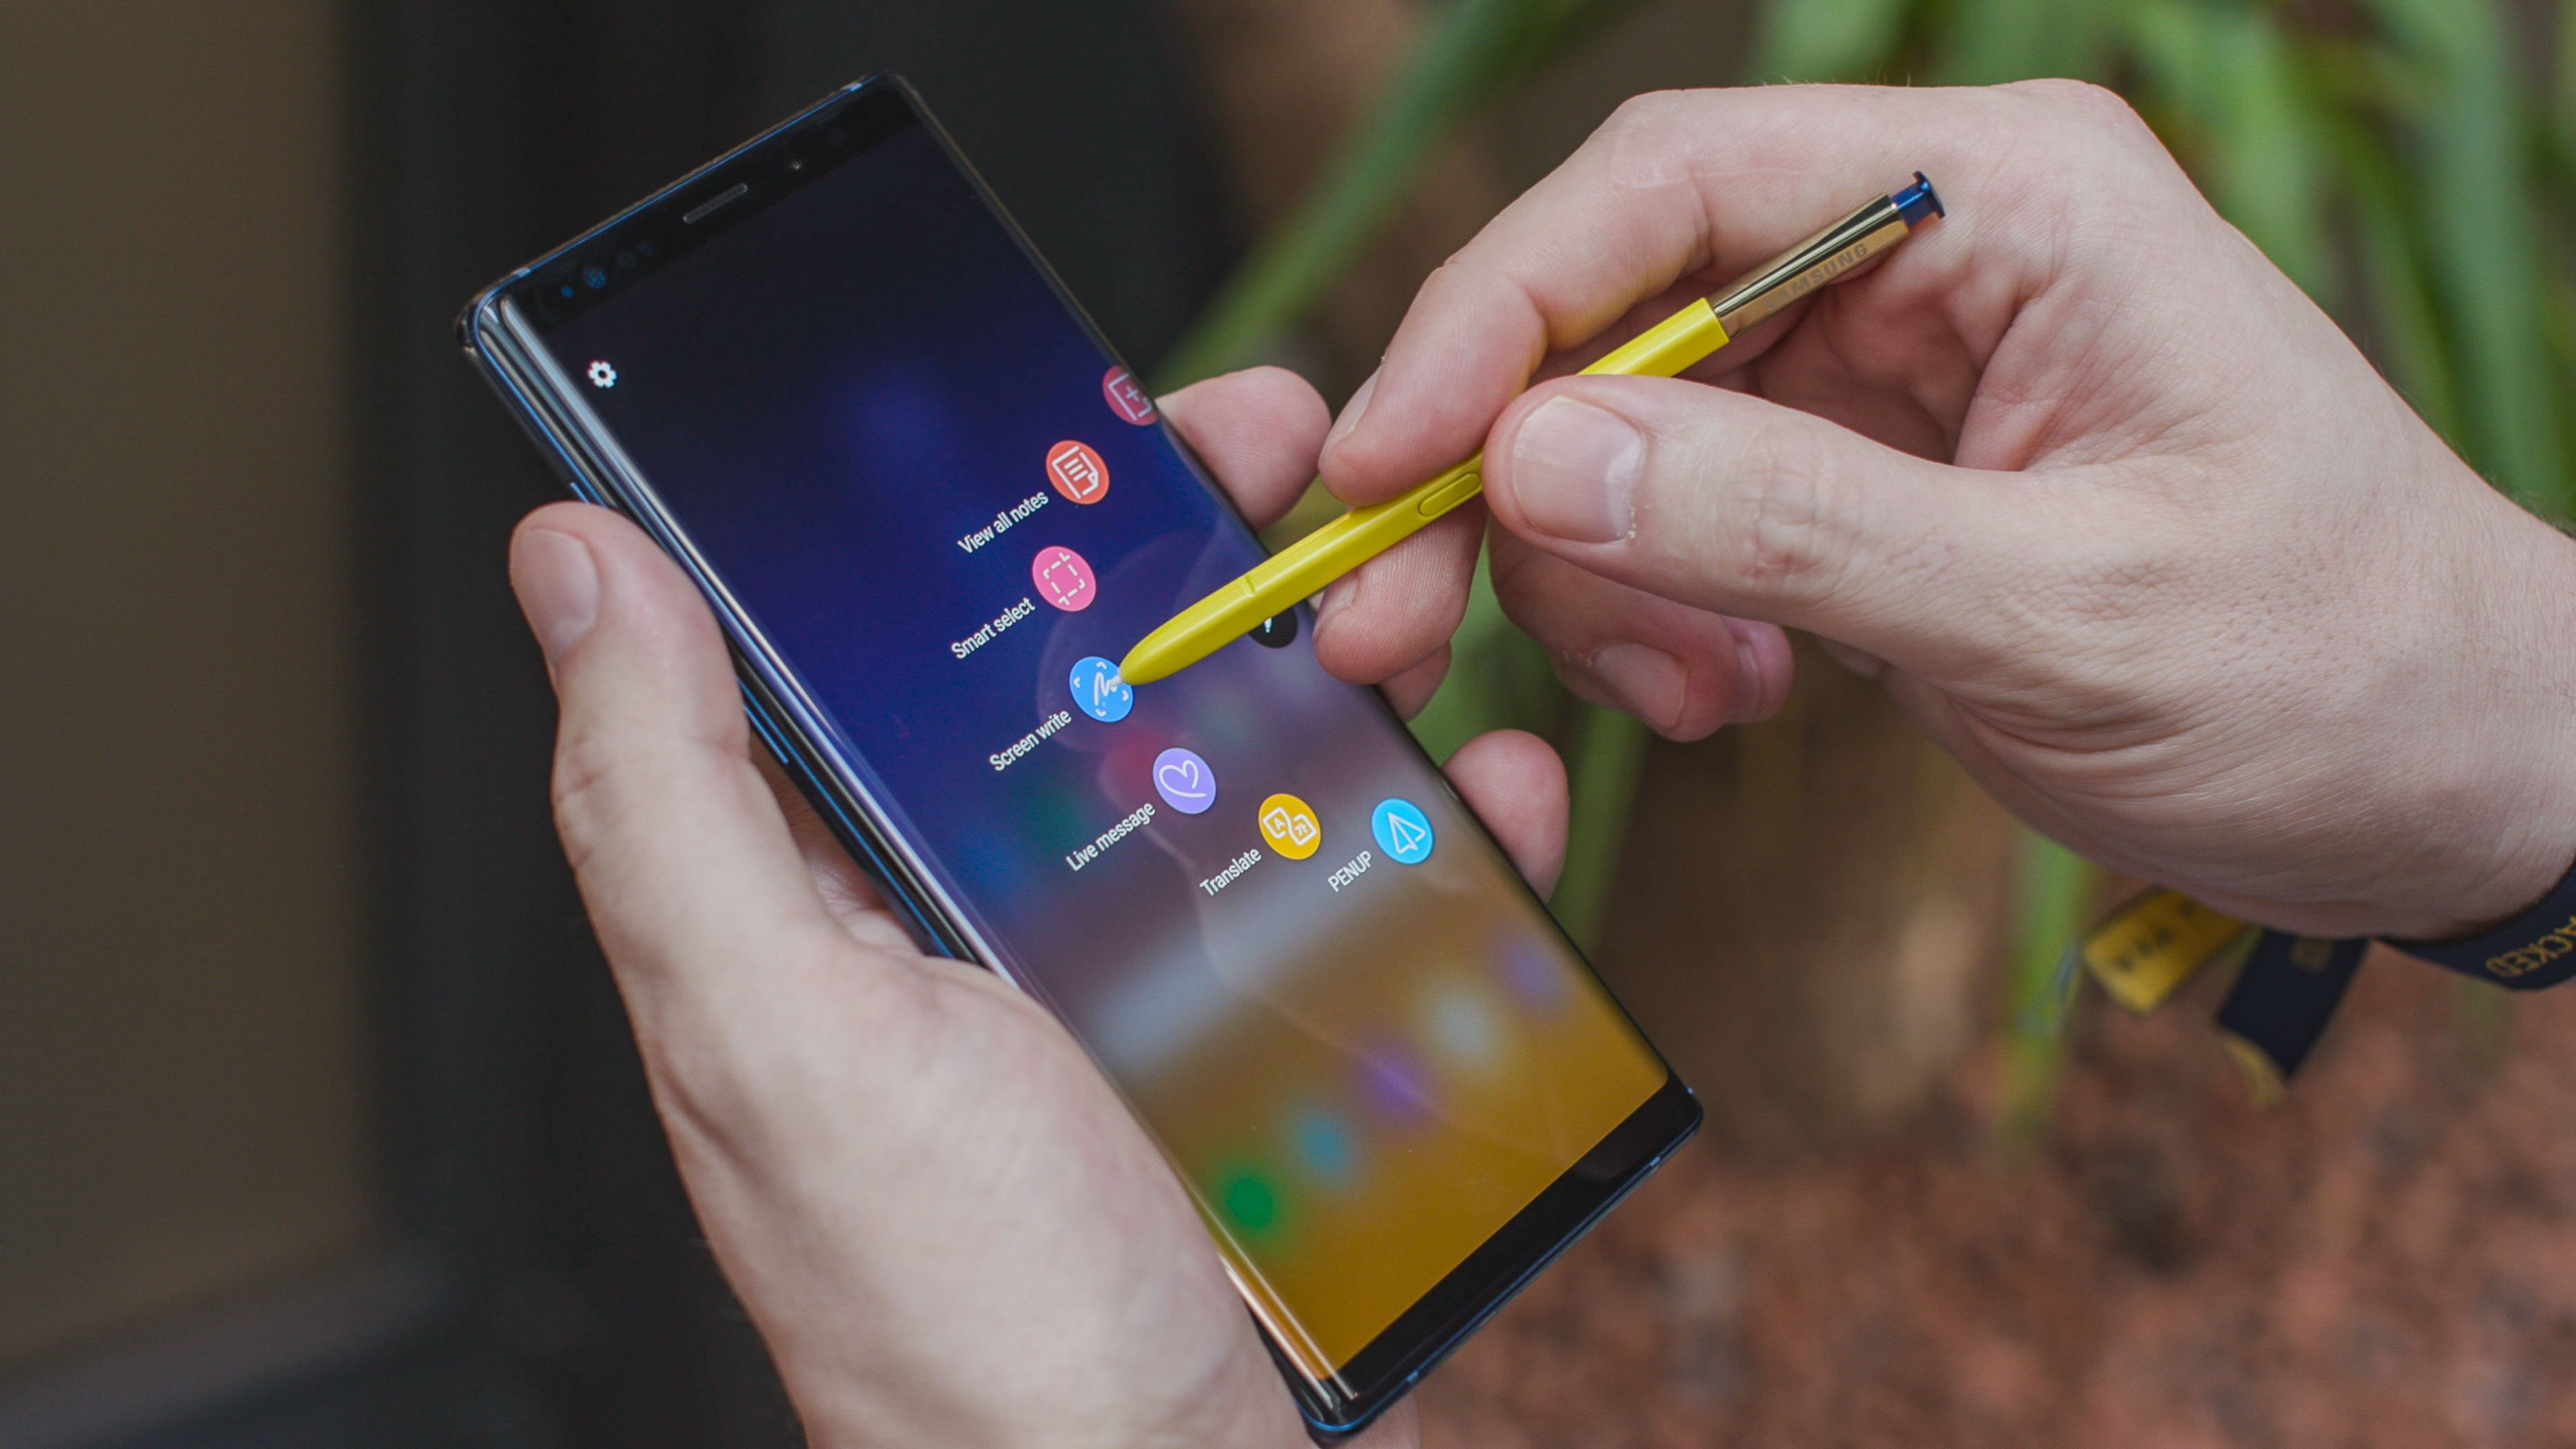 Galaxy Note 9 touch screen problems After Updating To Android 9.0, Wi-Fi Connection No Connection Galaxy Note 9, Fingerprint Not Working After Updating